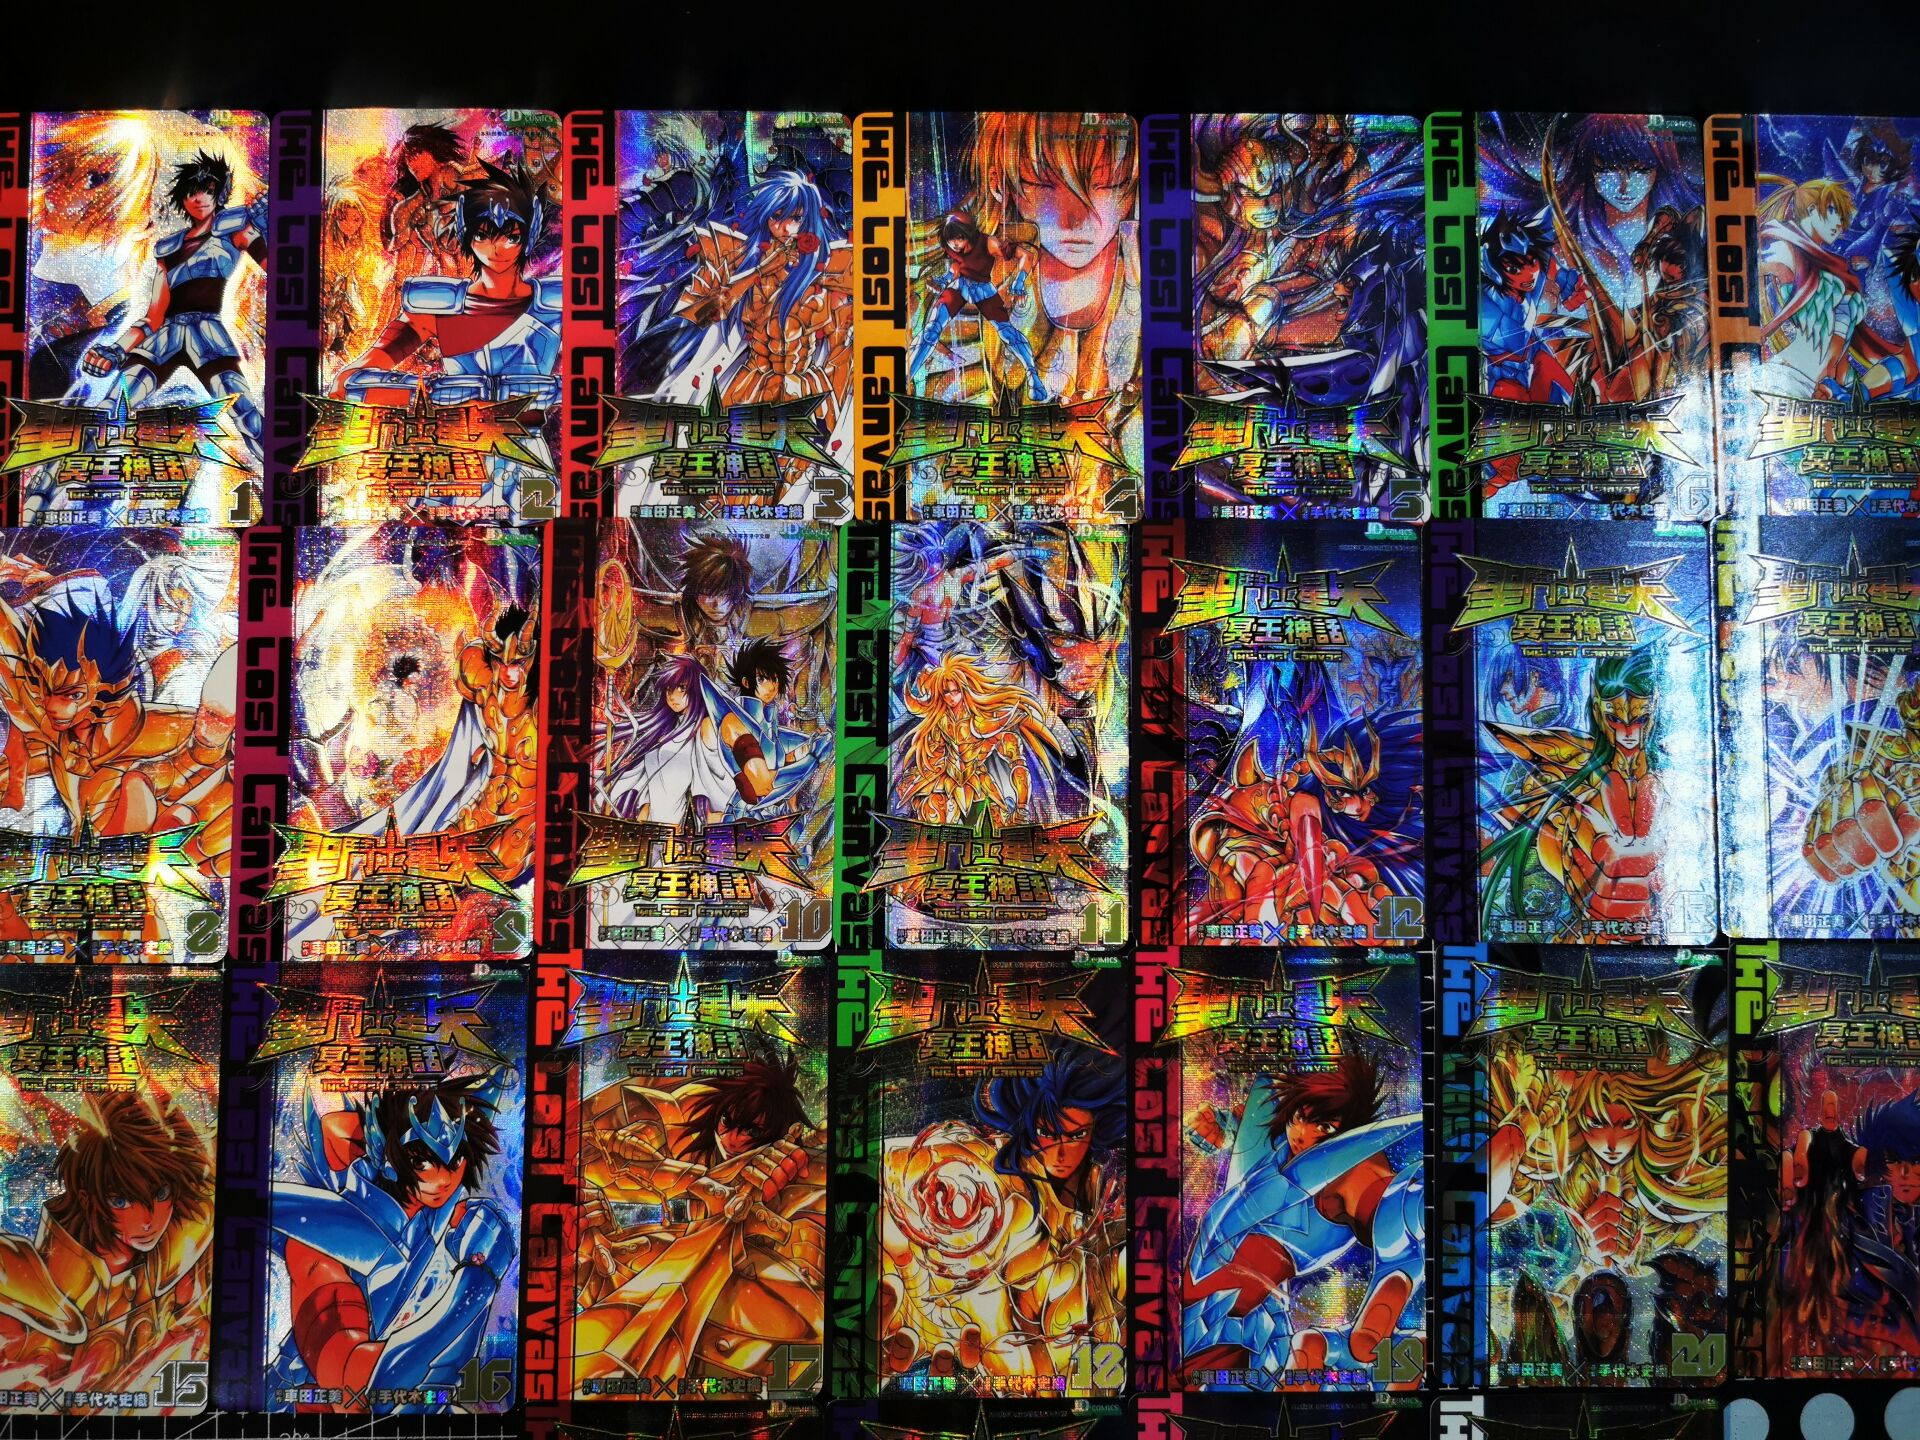 27pcs/set Saint Seiya Toys Hobbies Hobby Collectibles Game Collection Anime Cards